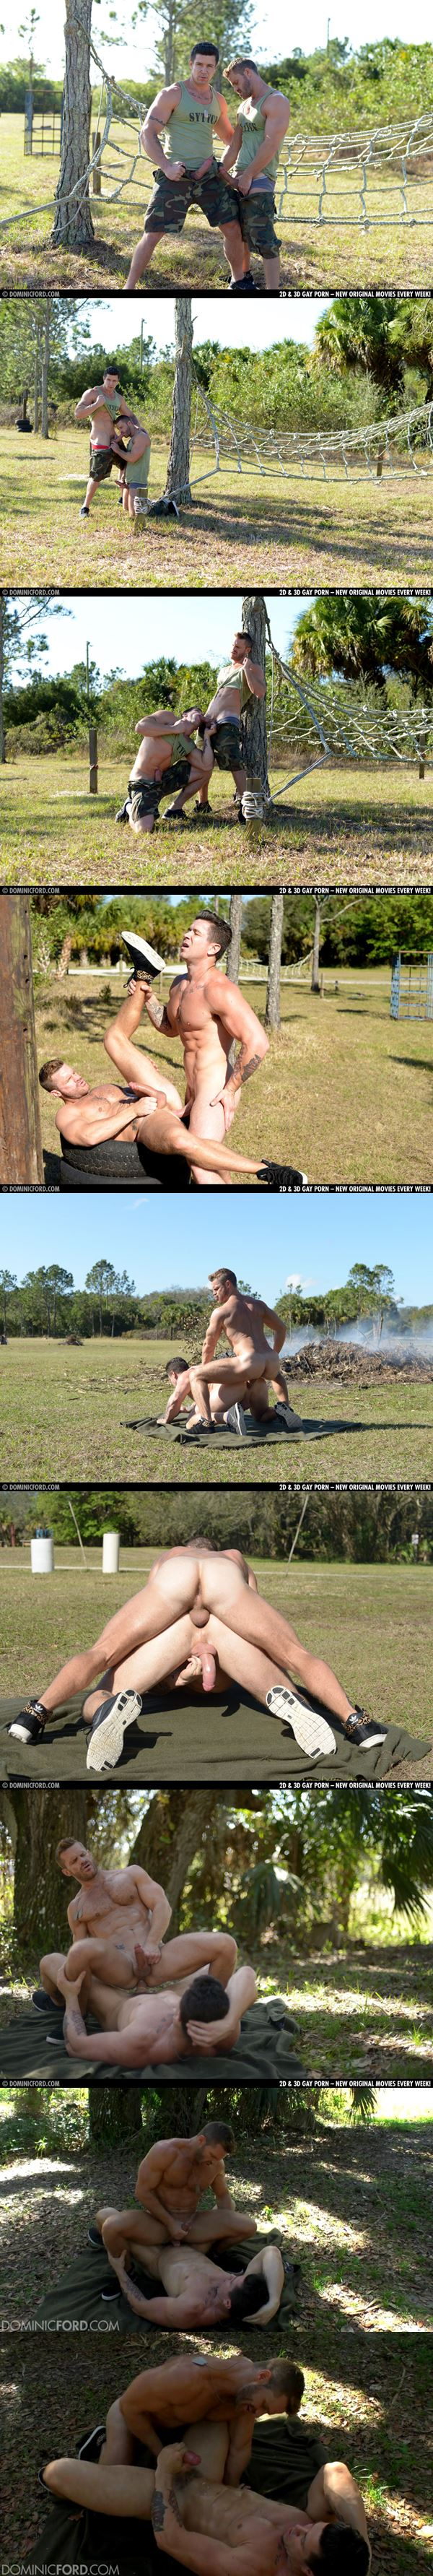 Muscle Jock Trenton Ducati & Landon Conrad Flip-Fuck Outdoors in So You Think You Can Fuck Season 4 Episode 1 at Dominicford 02